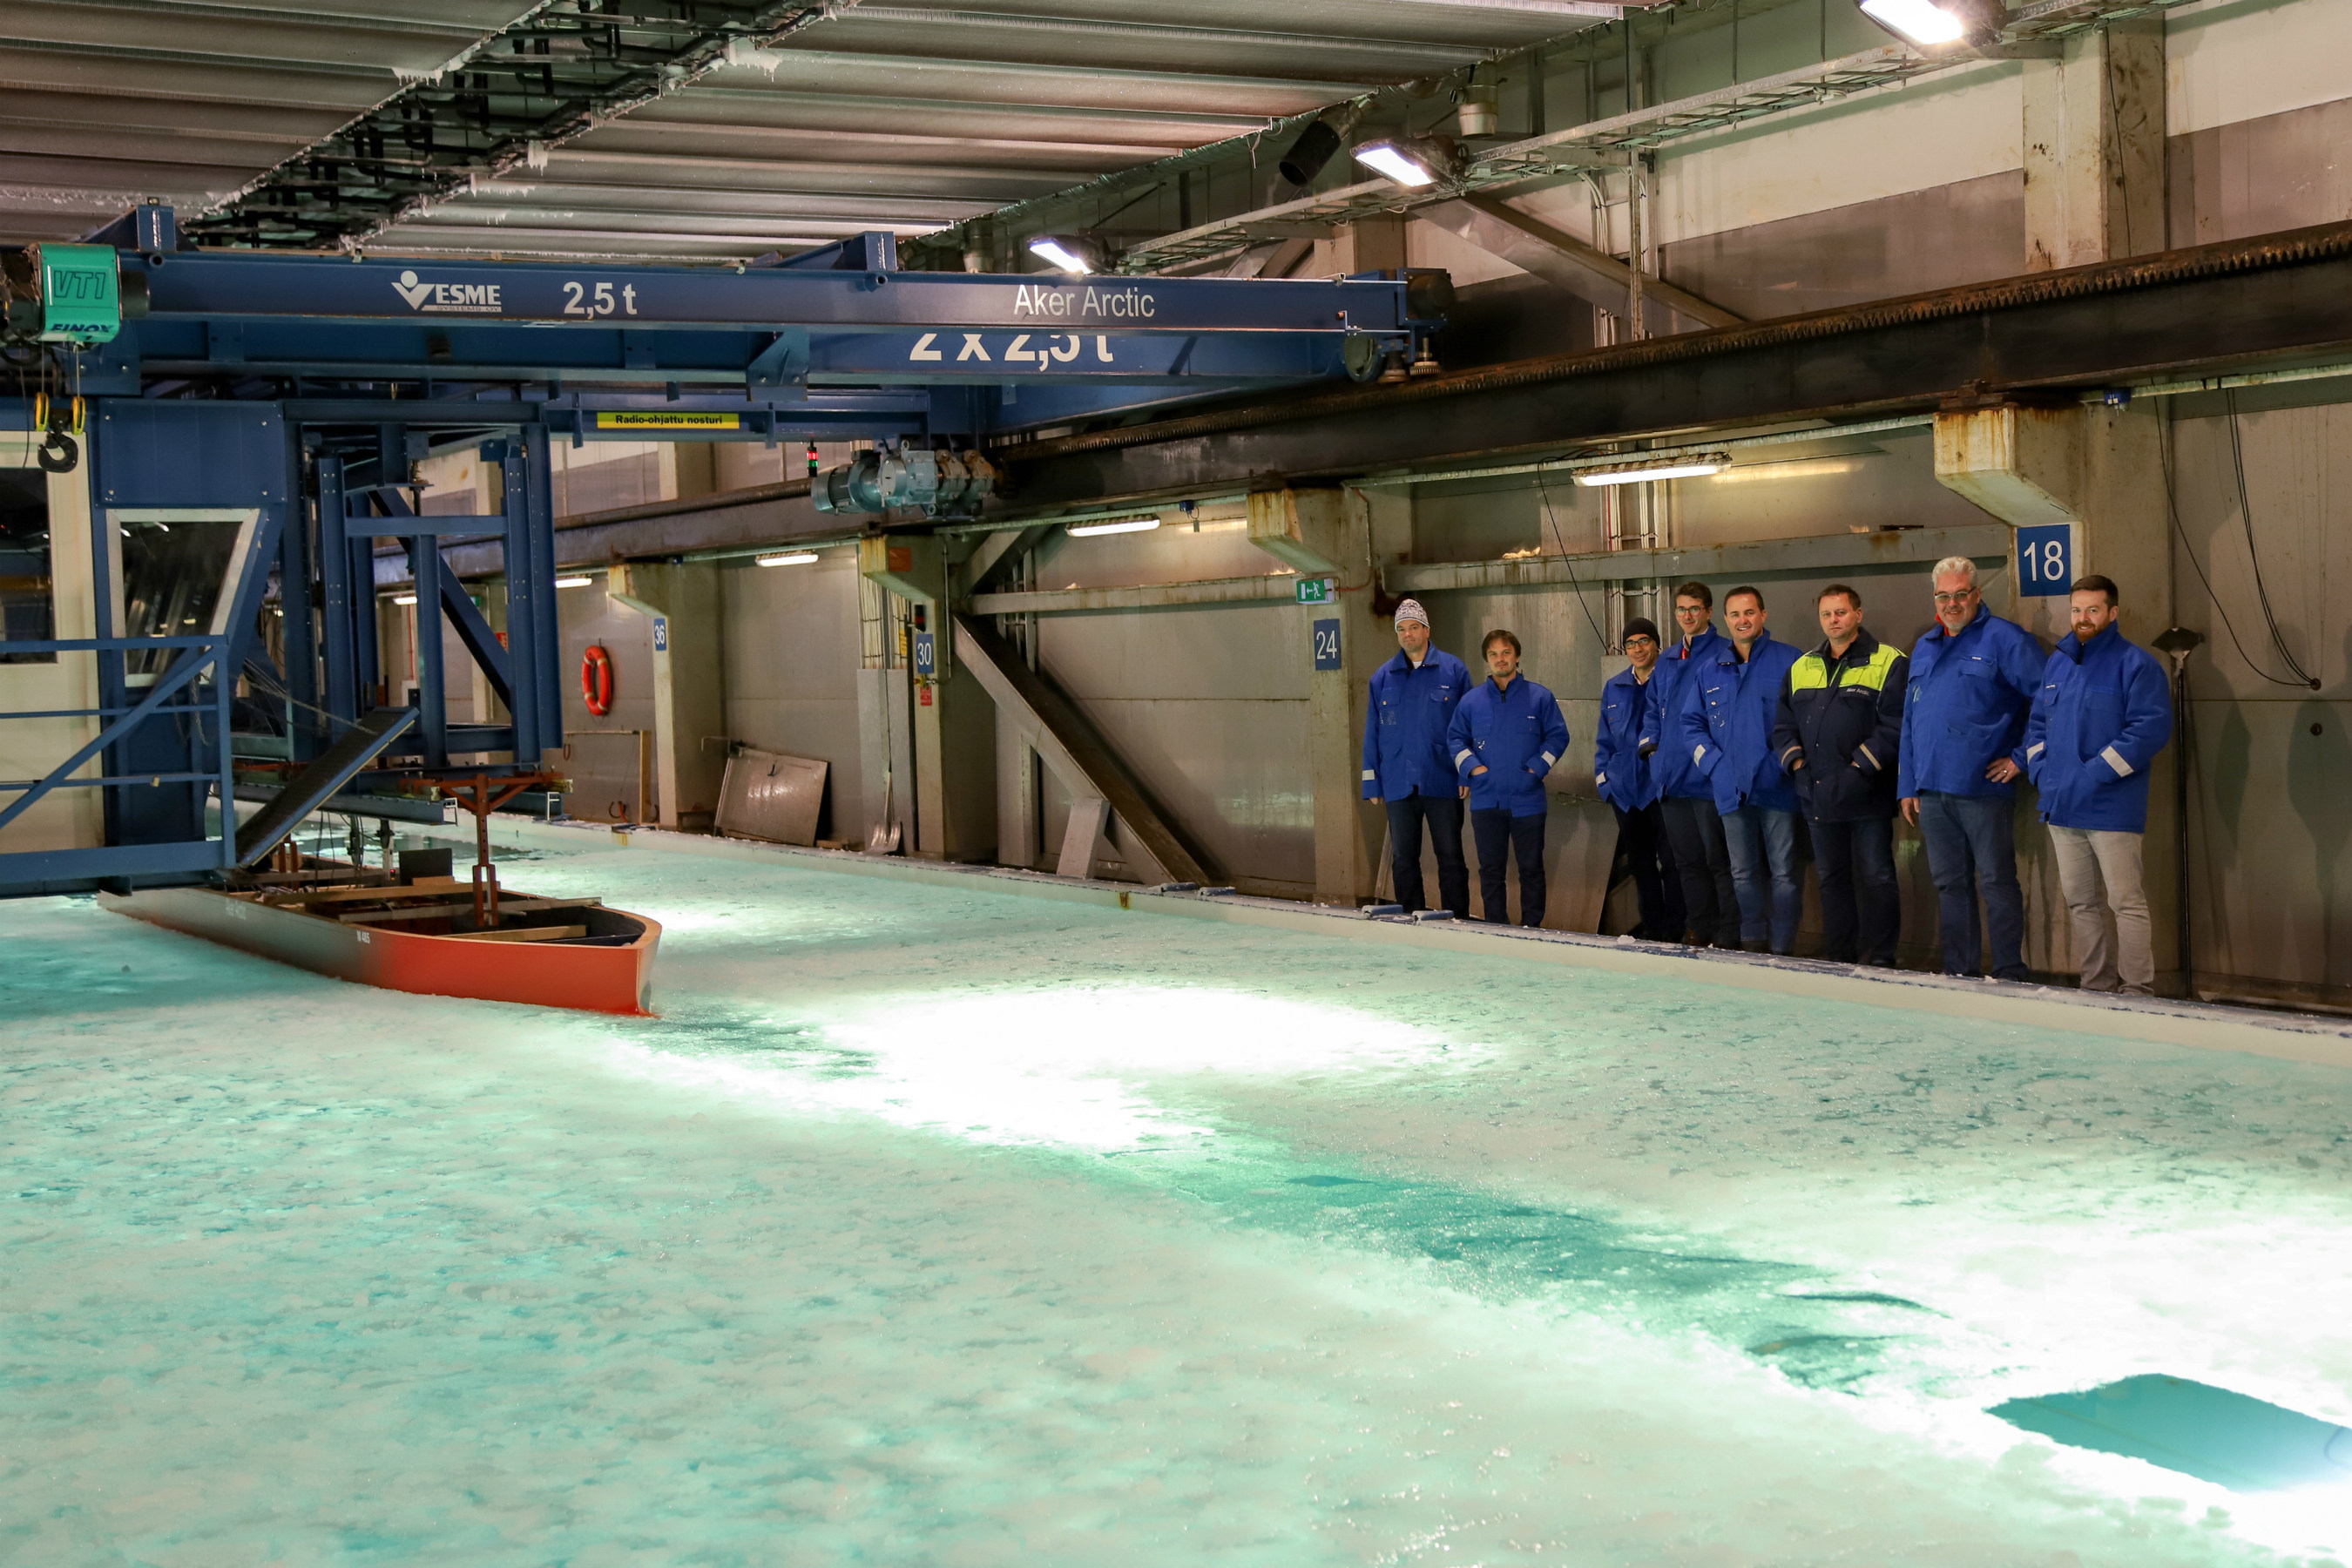 Seabourn Completes Ice Model Hull Test For New Expedition Ship Seabourn Venture  at Aker Arctic in Finland